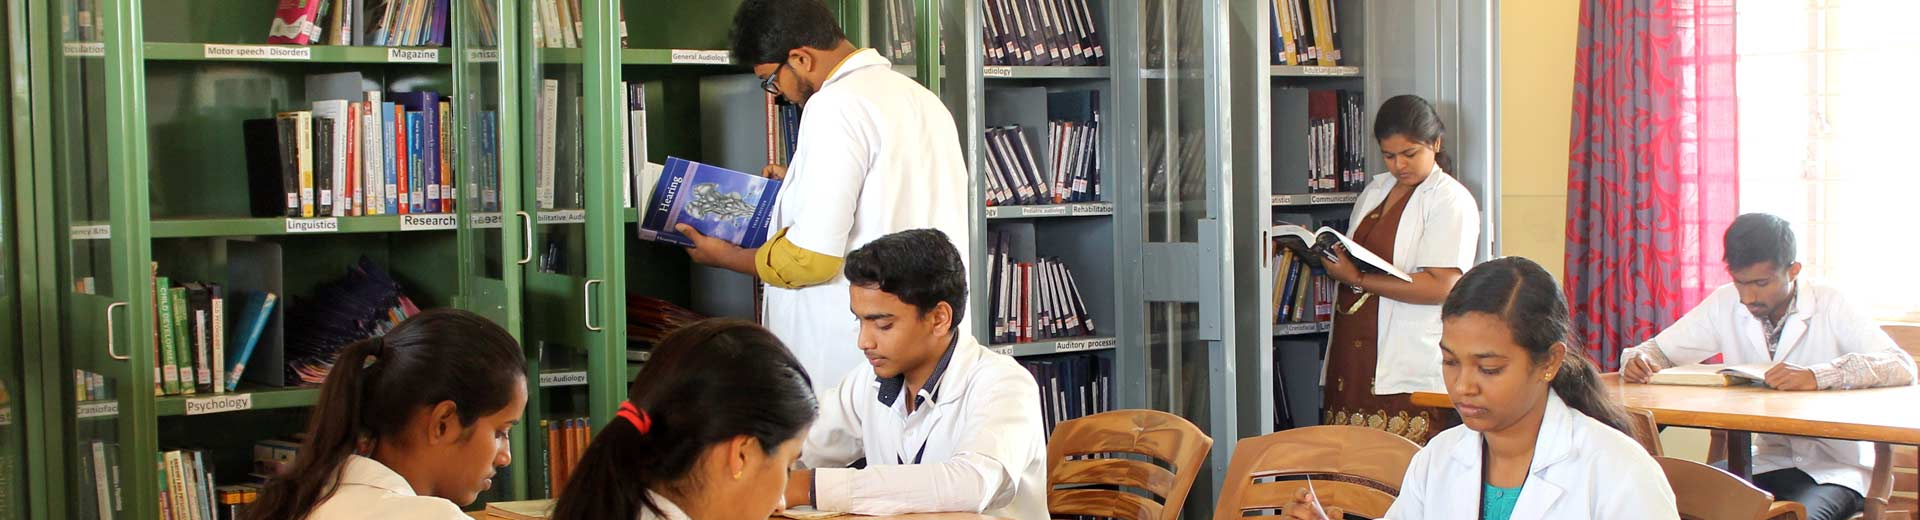 jssish-dharwad-library